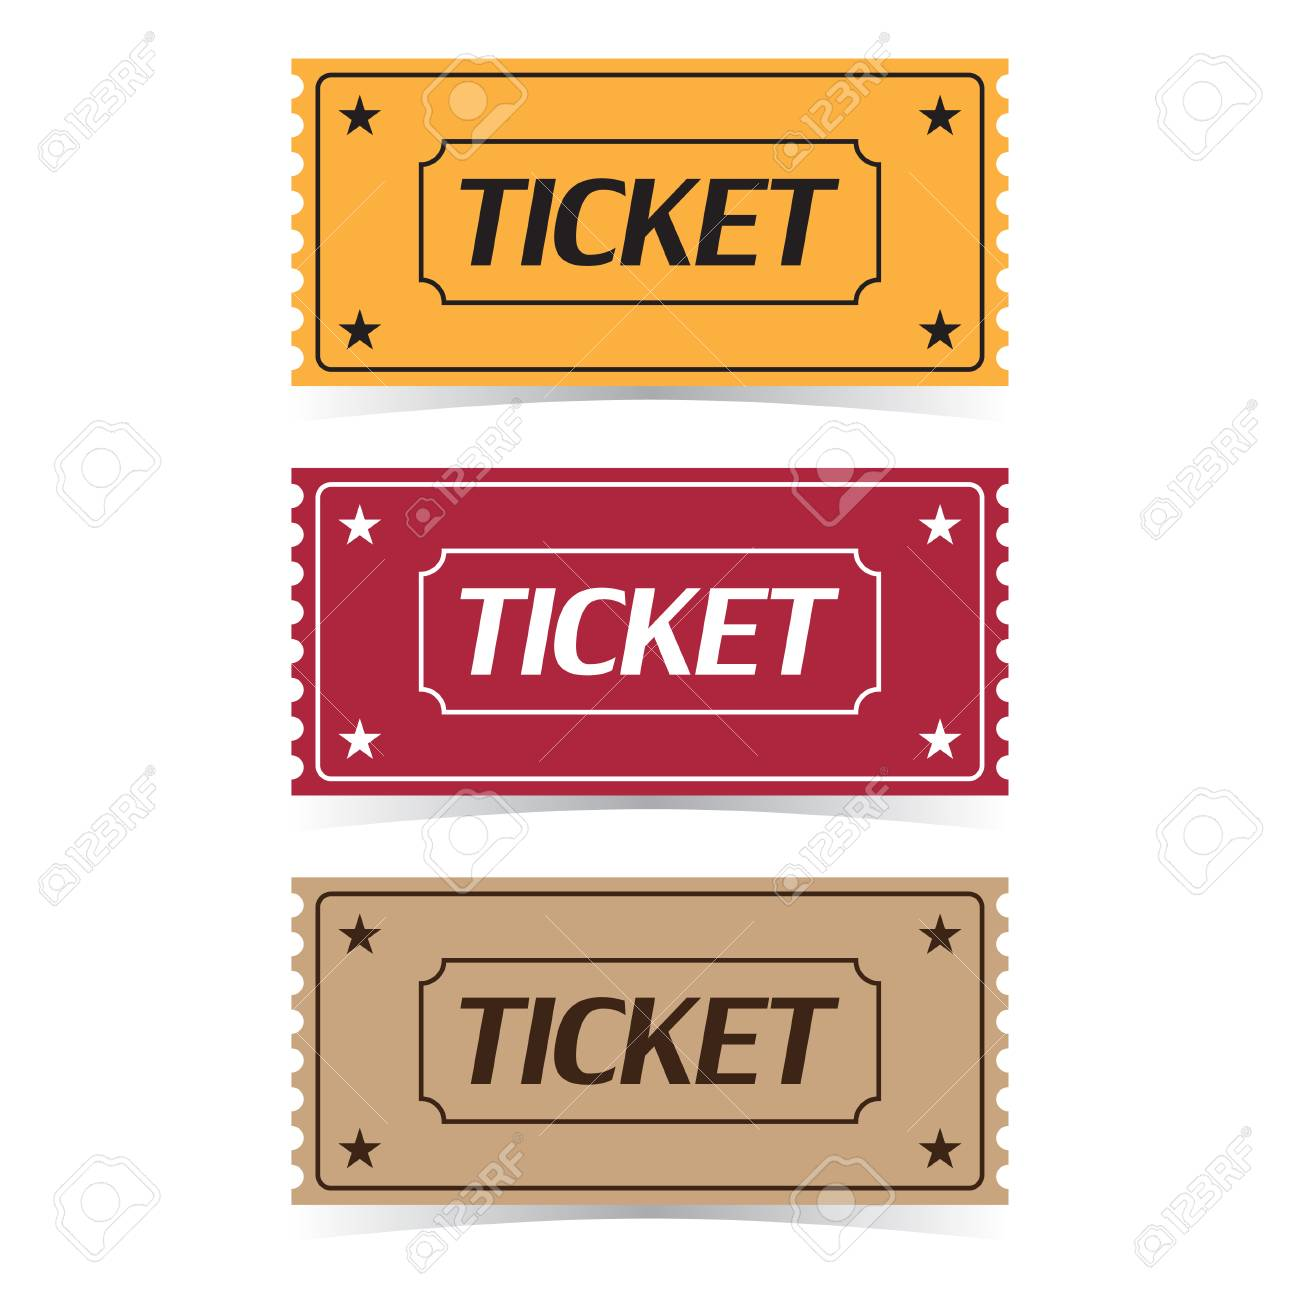 Set of movie ticket icons vector illustration. - 88843830